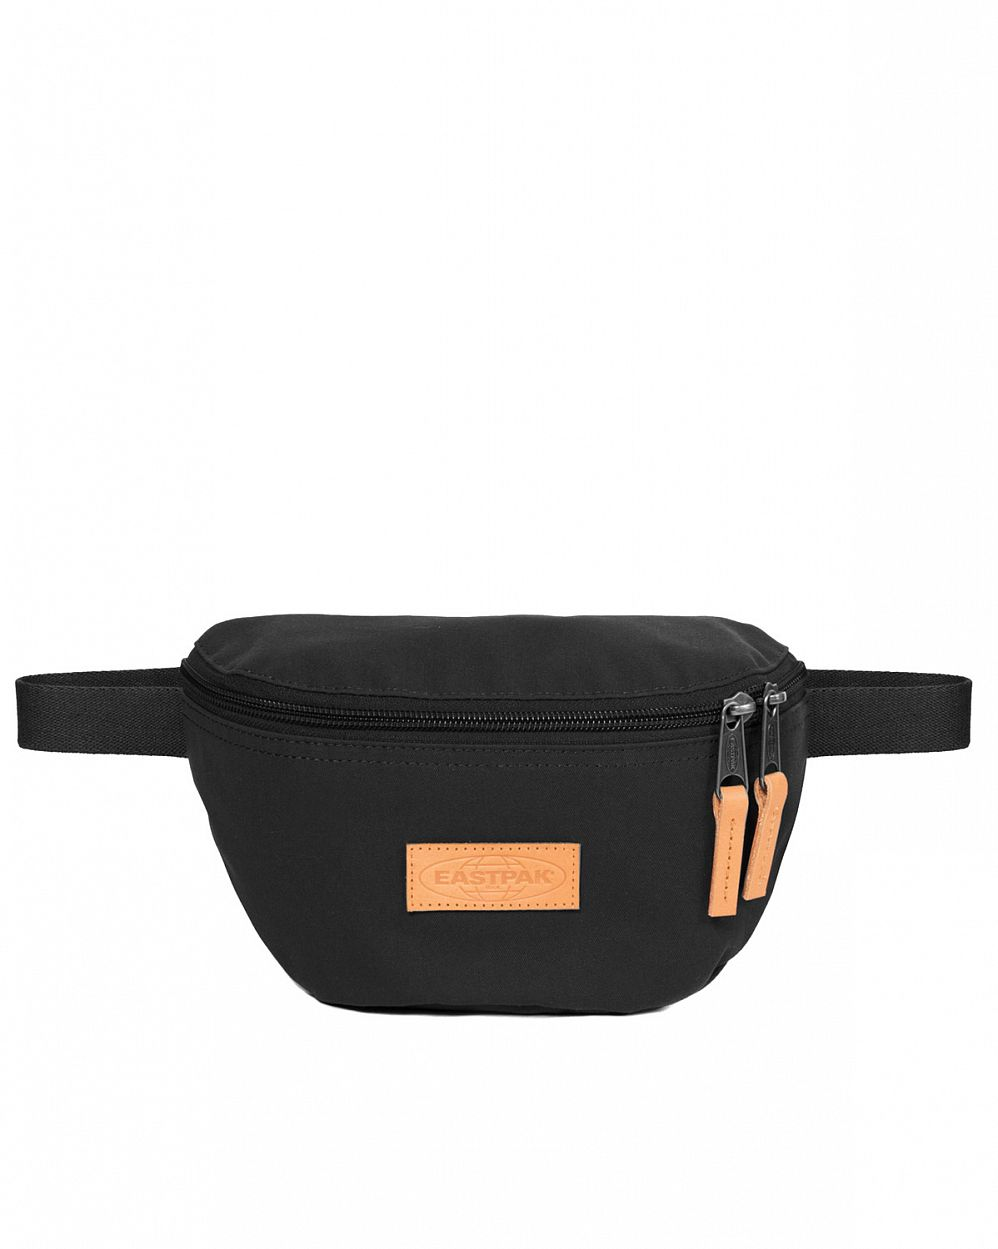 Сумка на пояс для документов Eastpak Springer Super Black отзывы